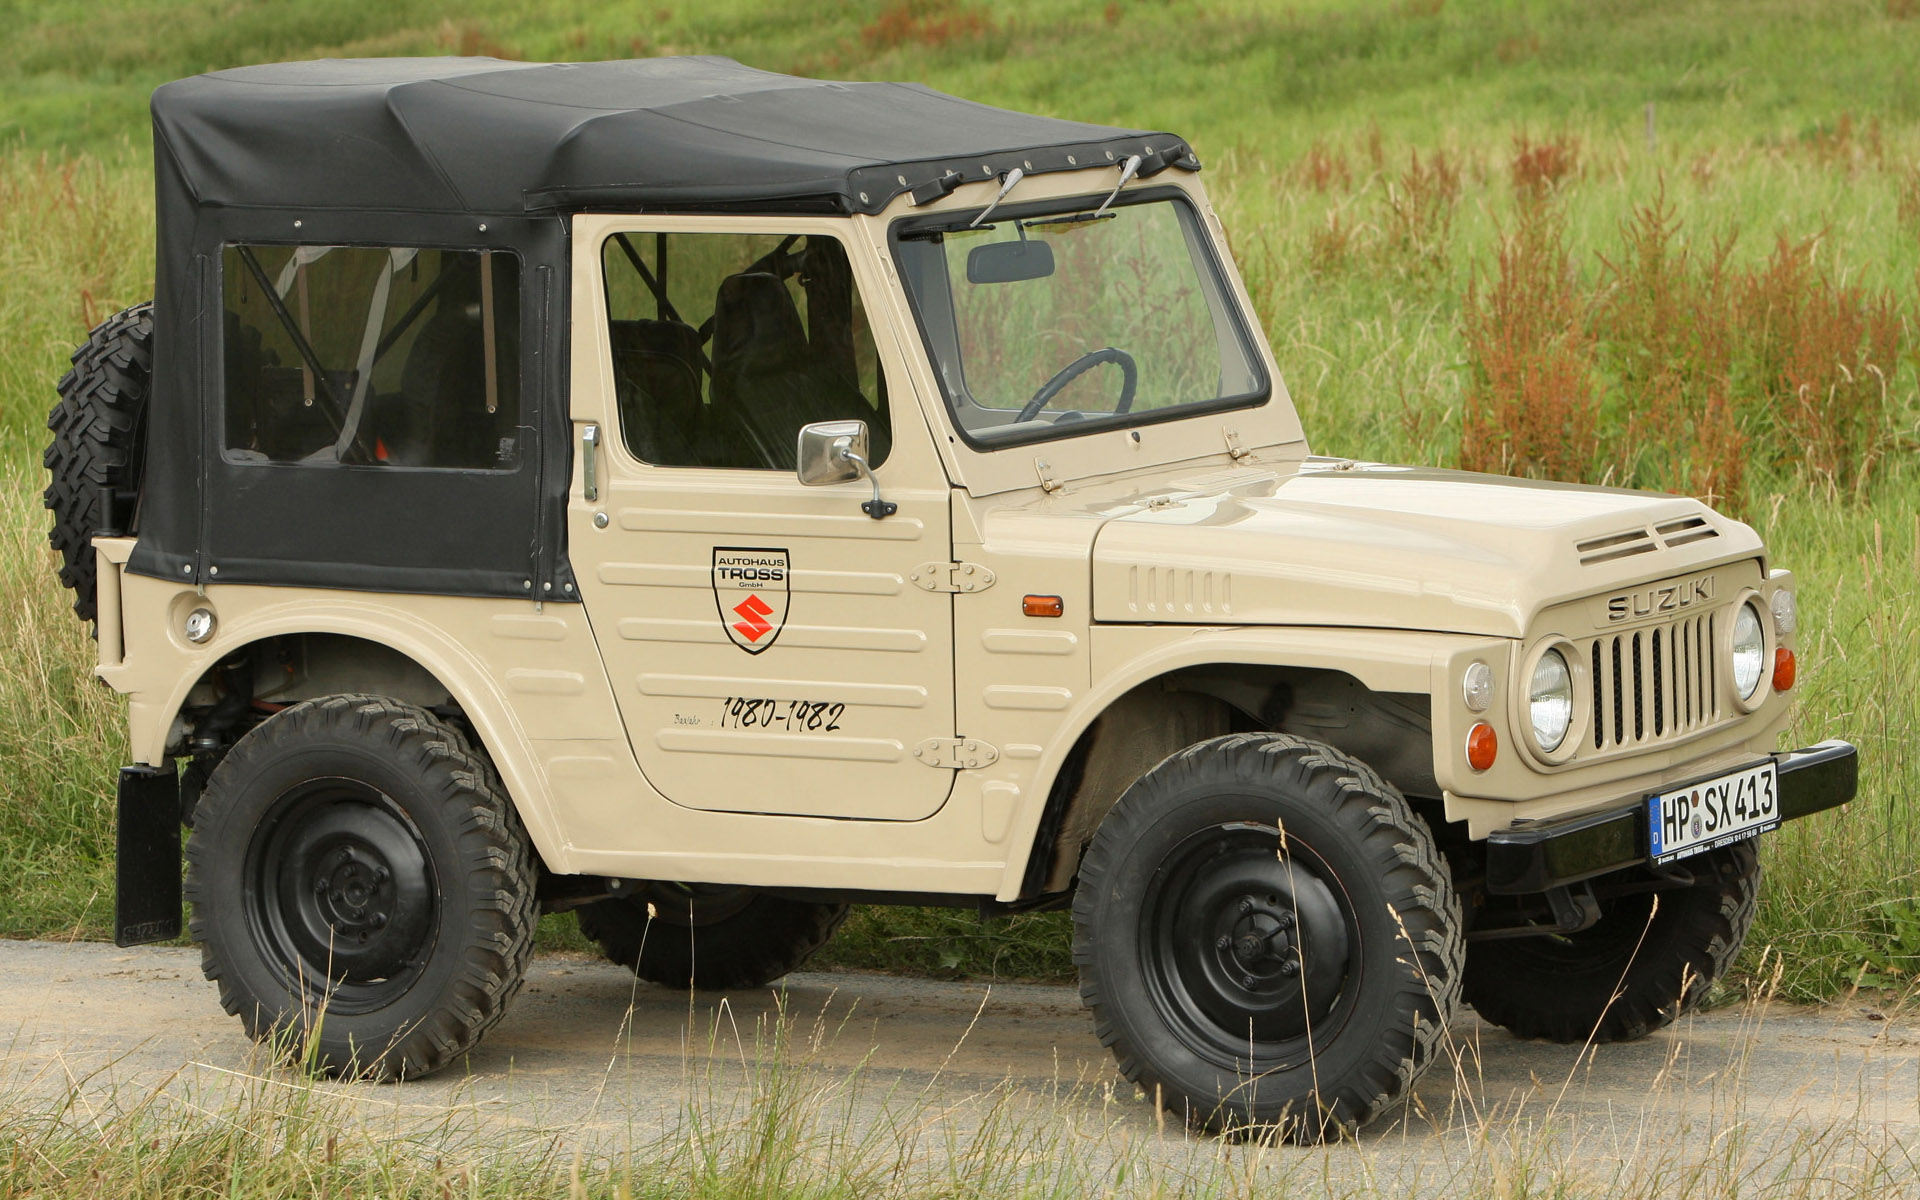 Suzuki lj80 photo - 6